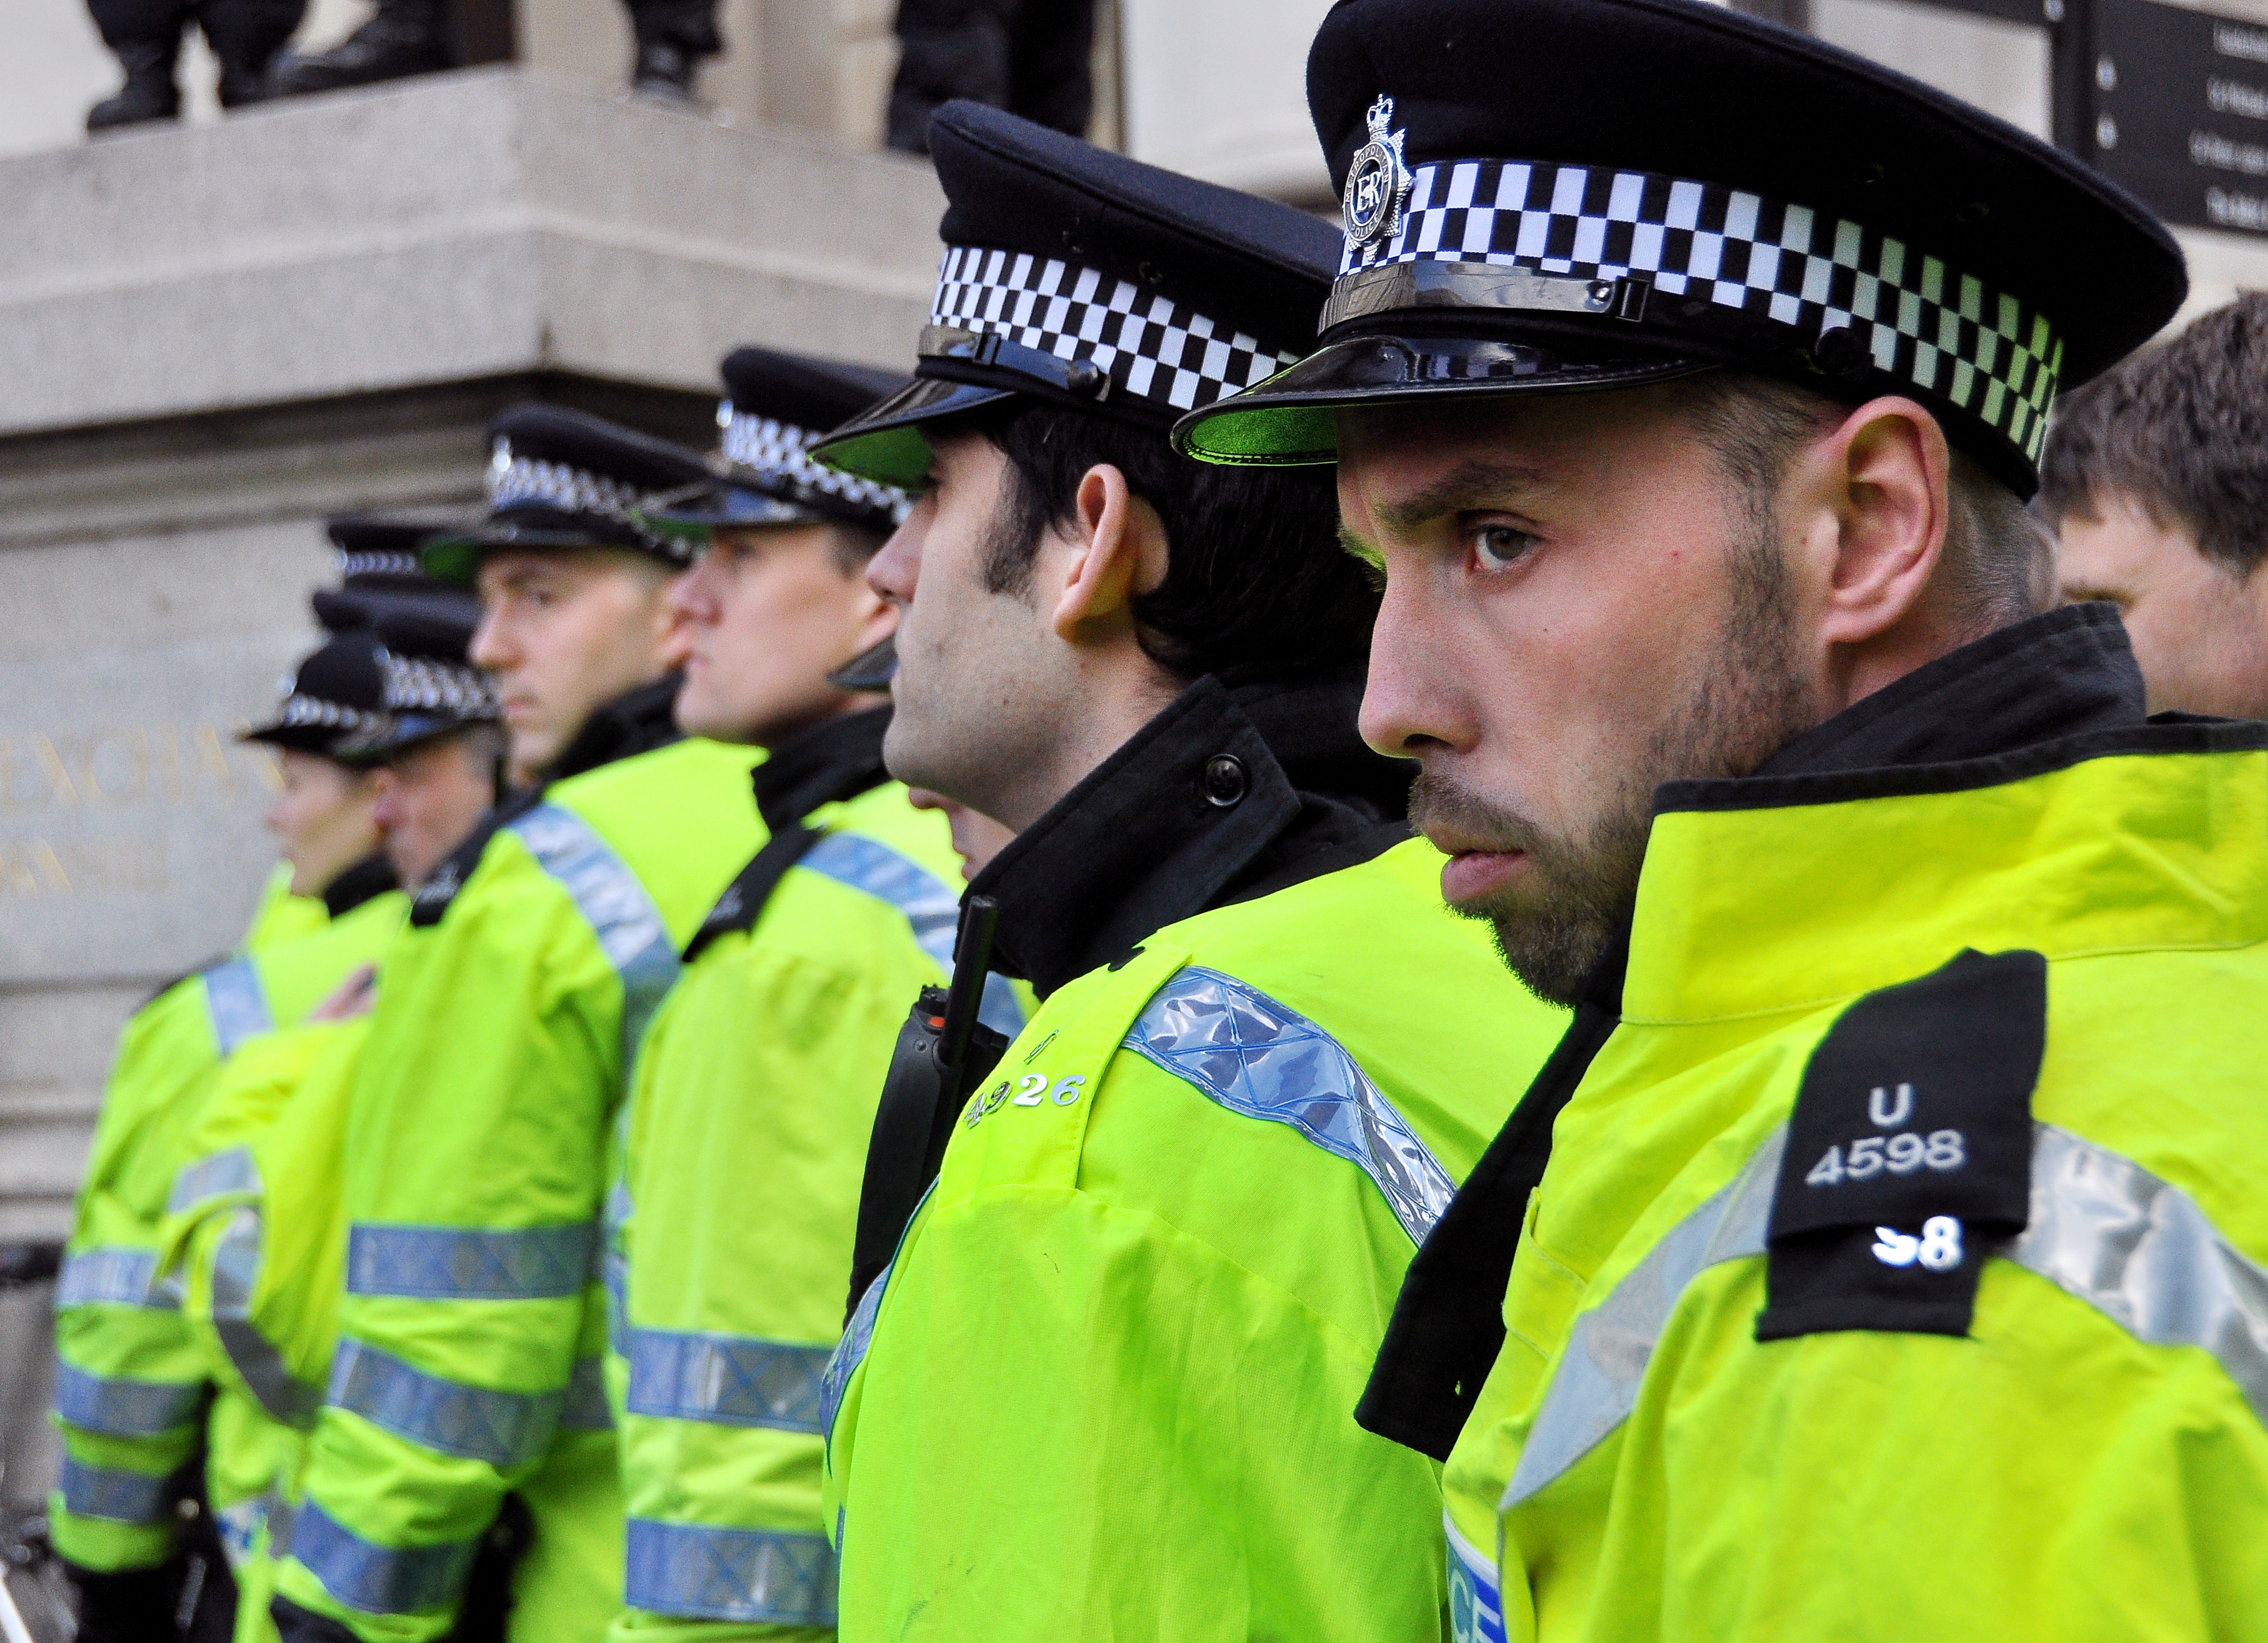 how to clear criminal record uk